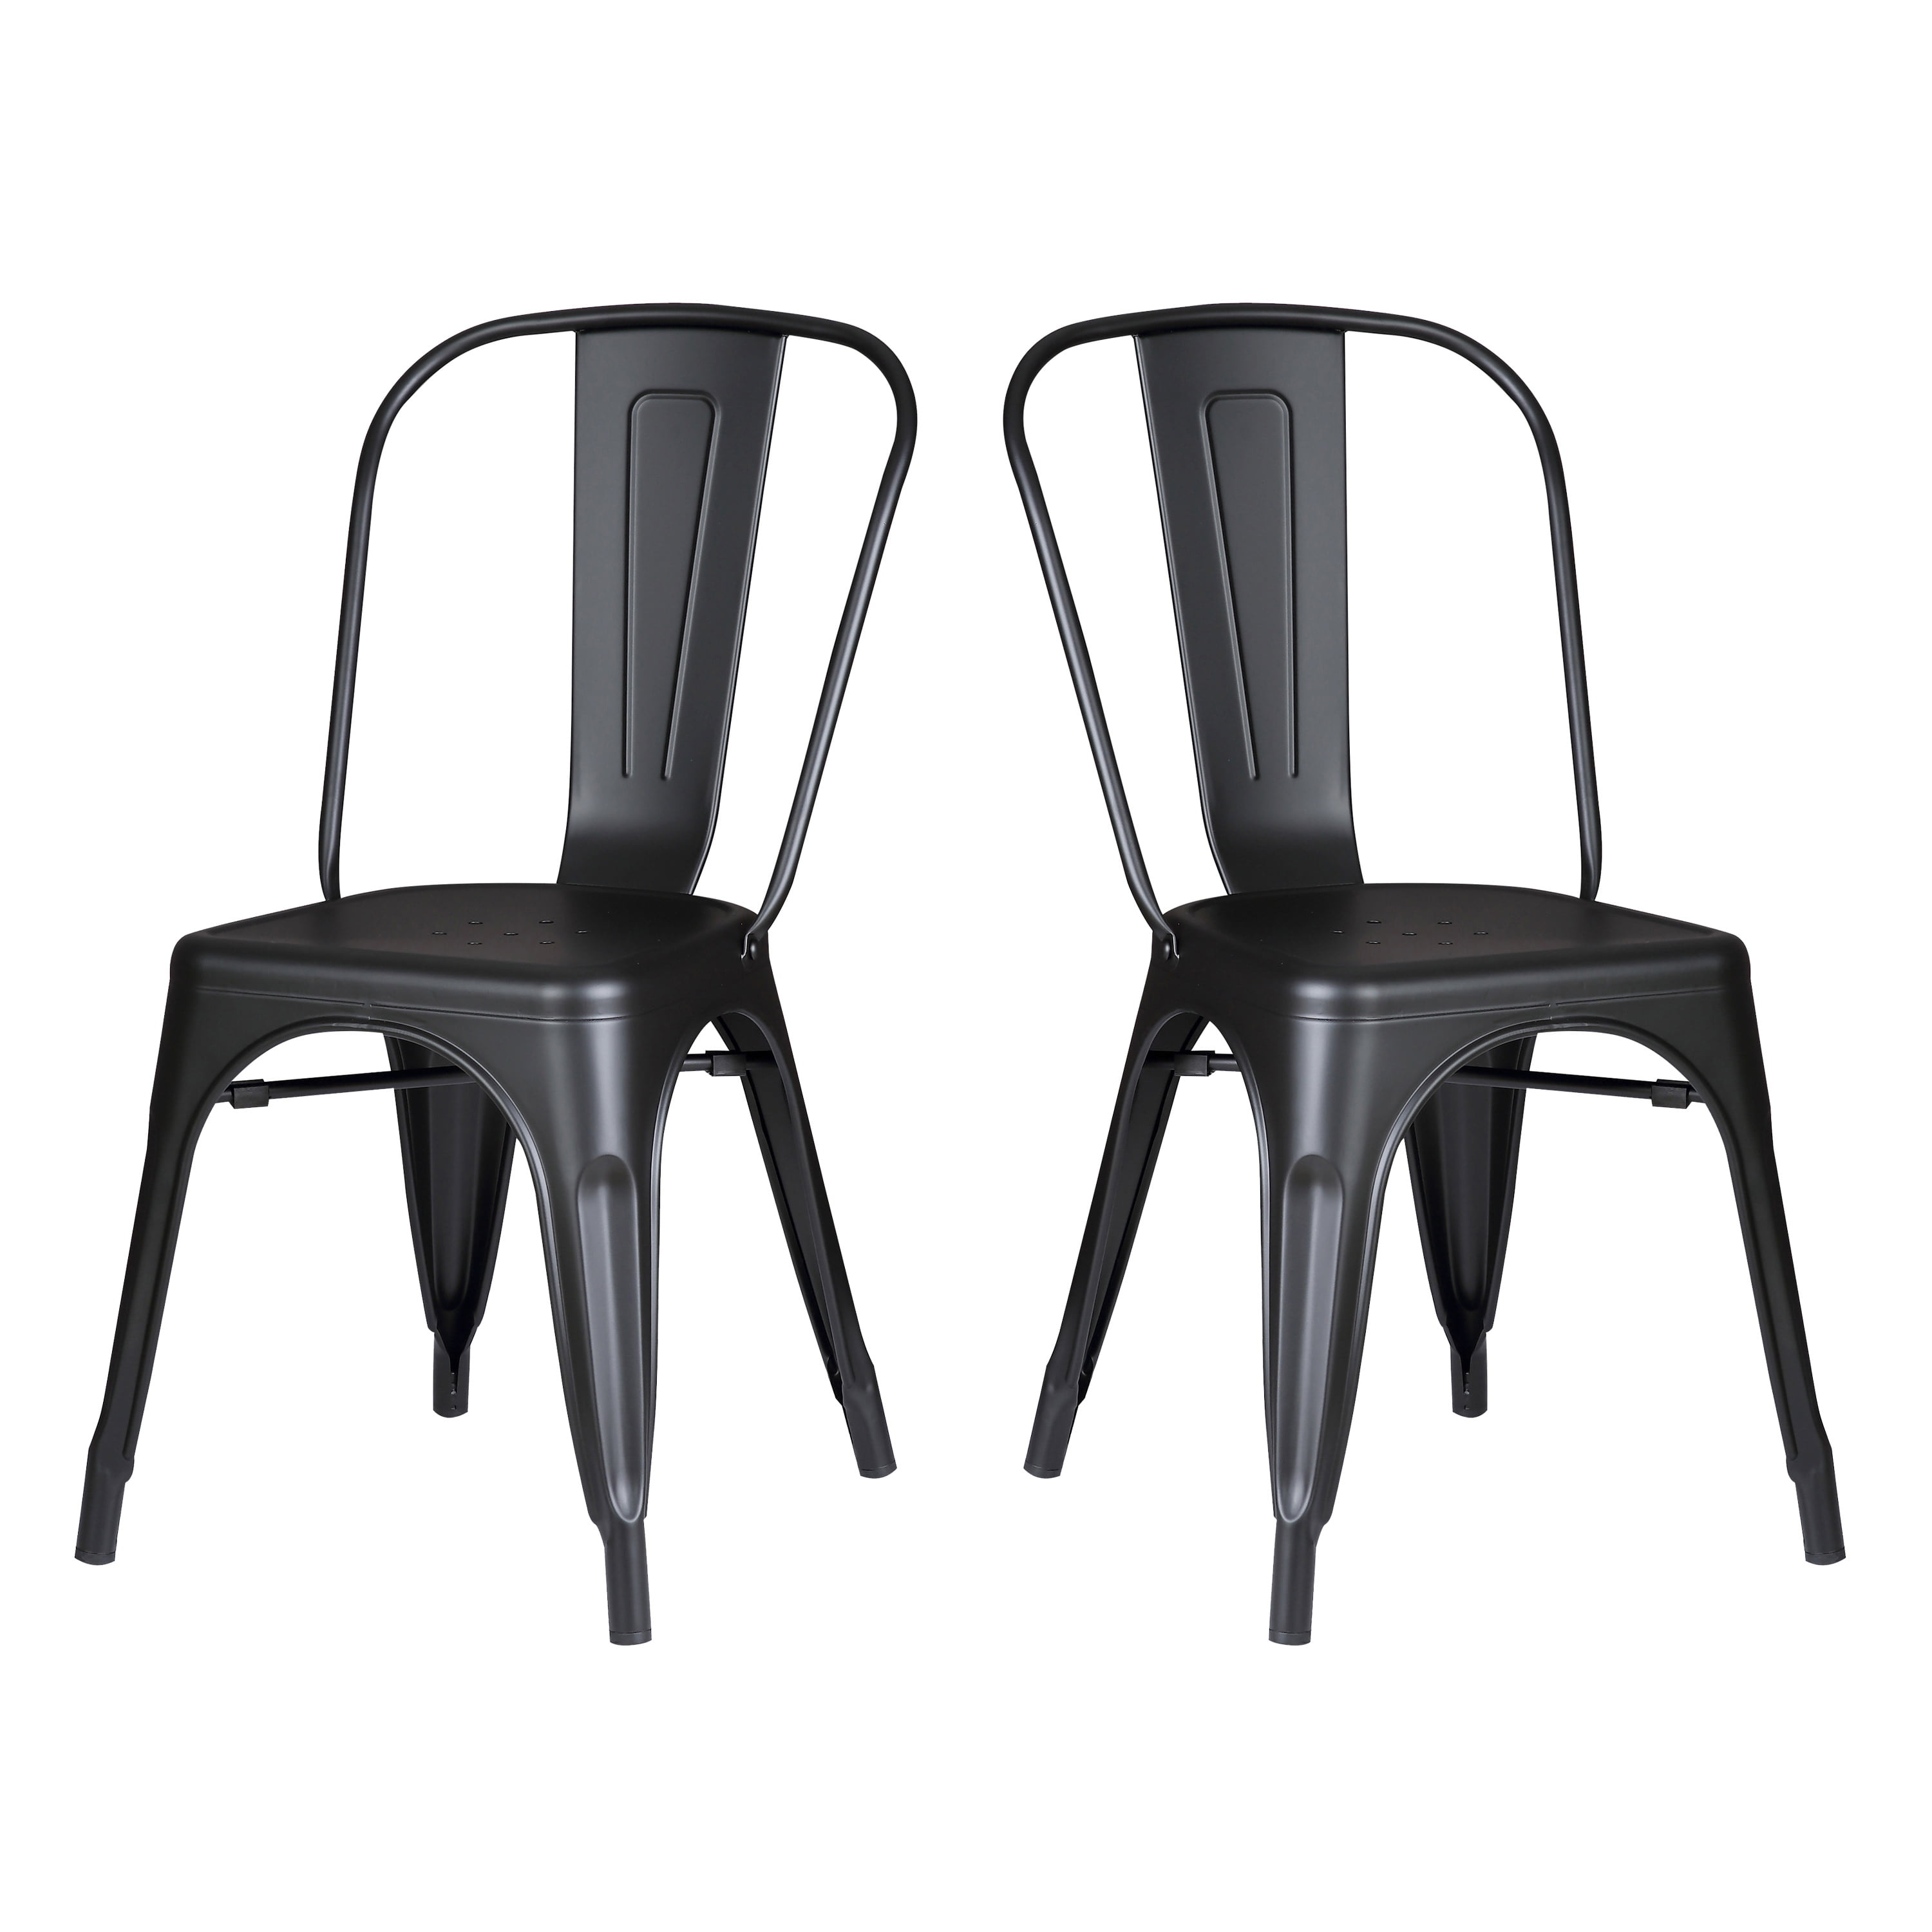 Modern Matte Black Metal Dining Room Kitchen Bar Chair 18 Inch Seat Height Set Of 2